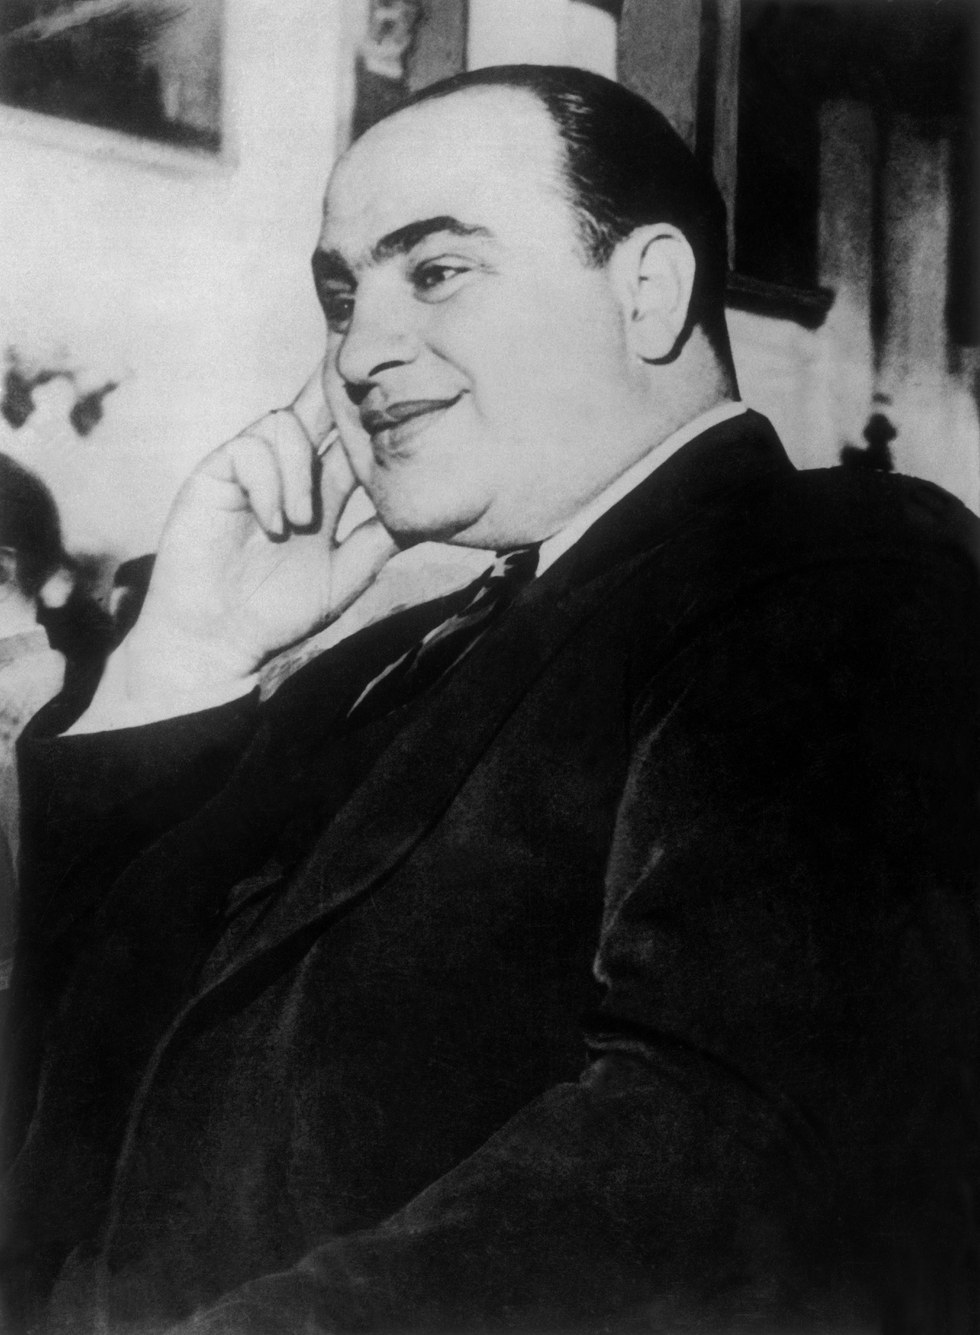 a biography on al capone a notorious gangster On january 17, 1899, one of the most notorious and dangerous gangsters in  american history, al capone, was born in brooklyn, new york.